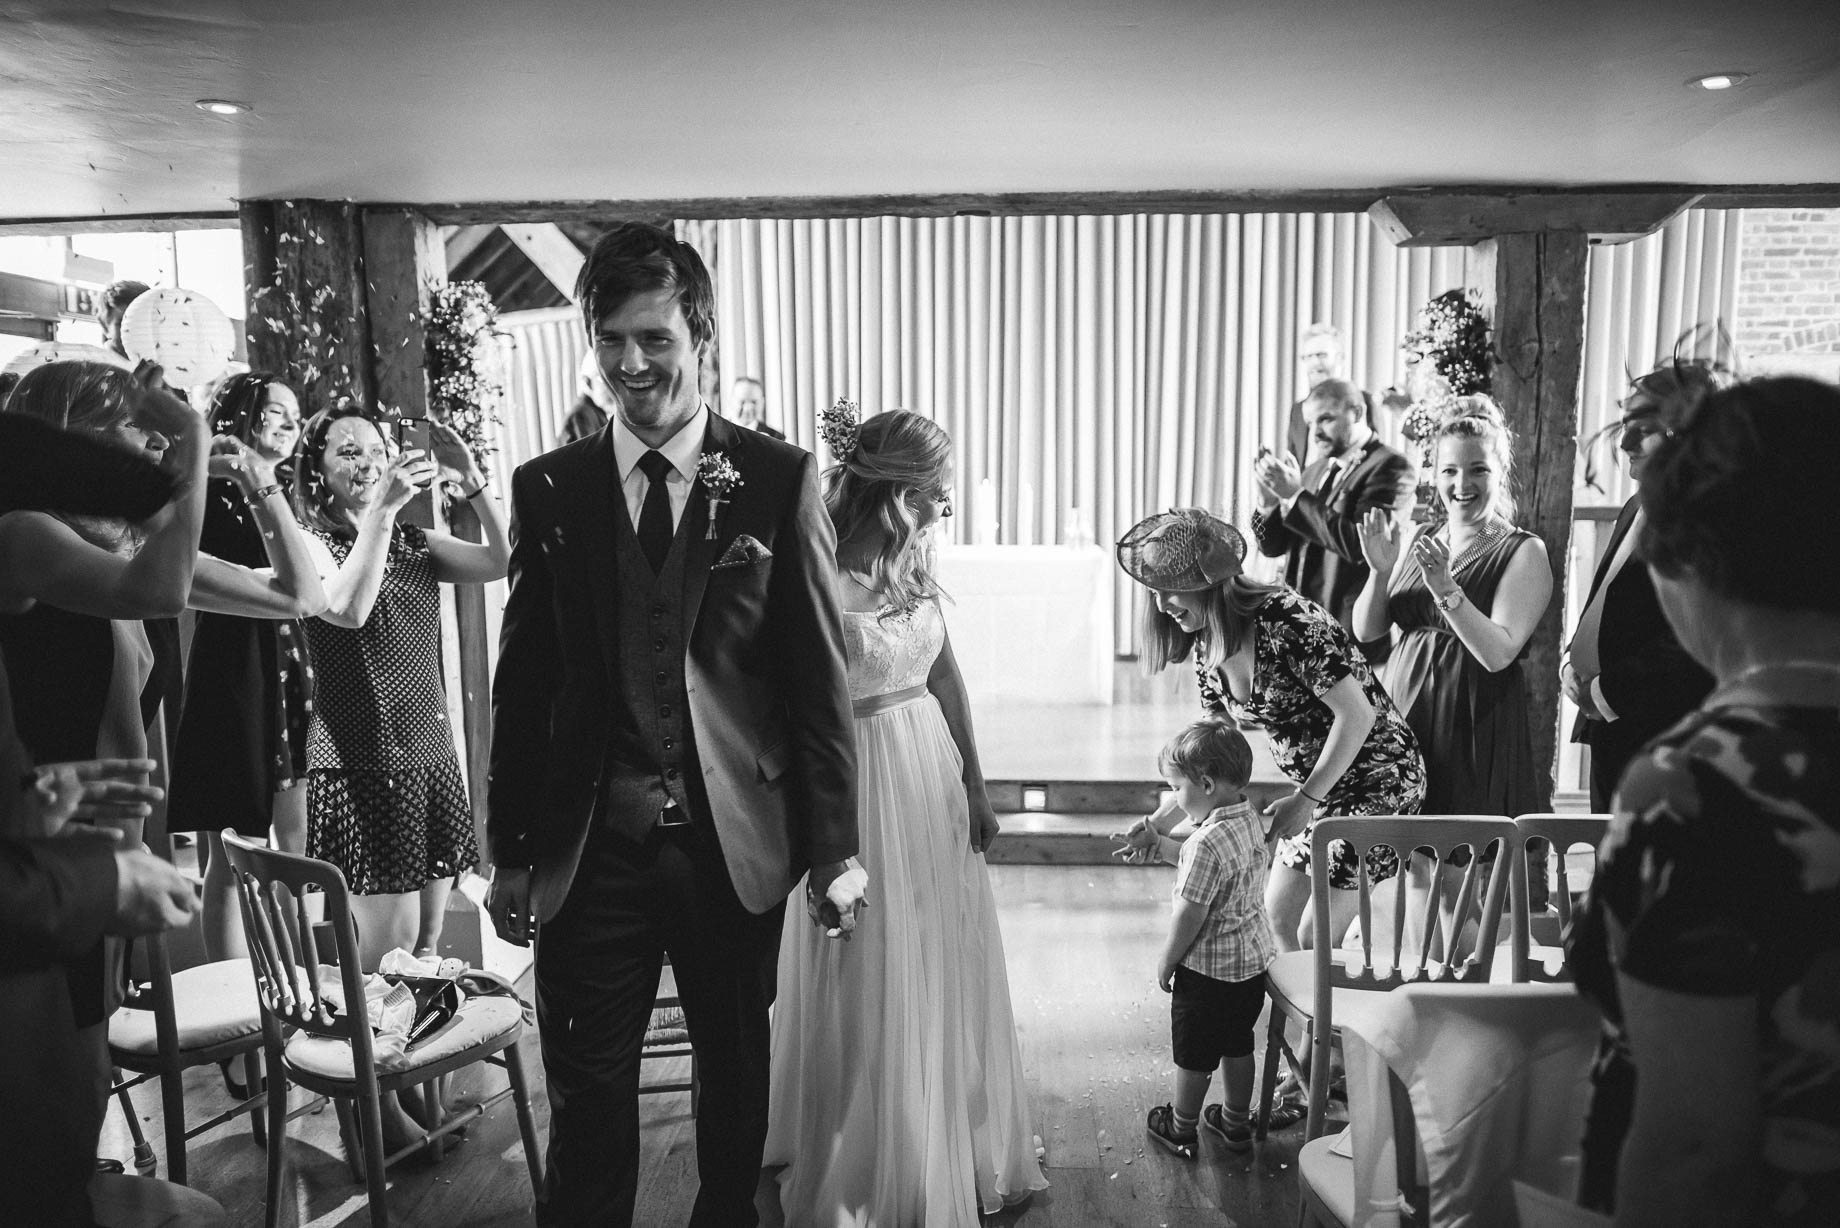 Bury Court Barn wedding photography by Guy Collier - Heather and Pat (59 of 170)